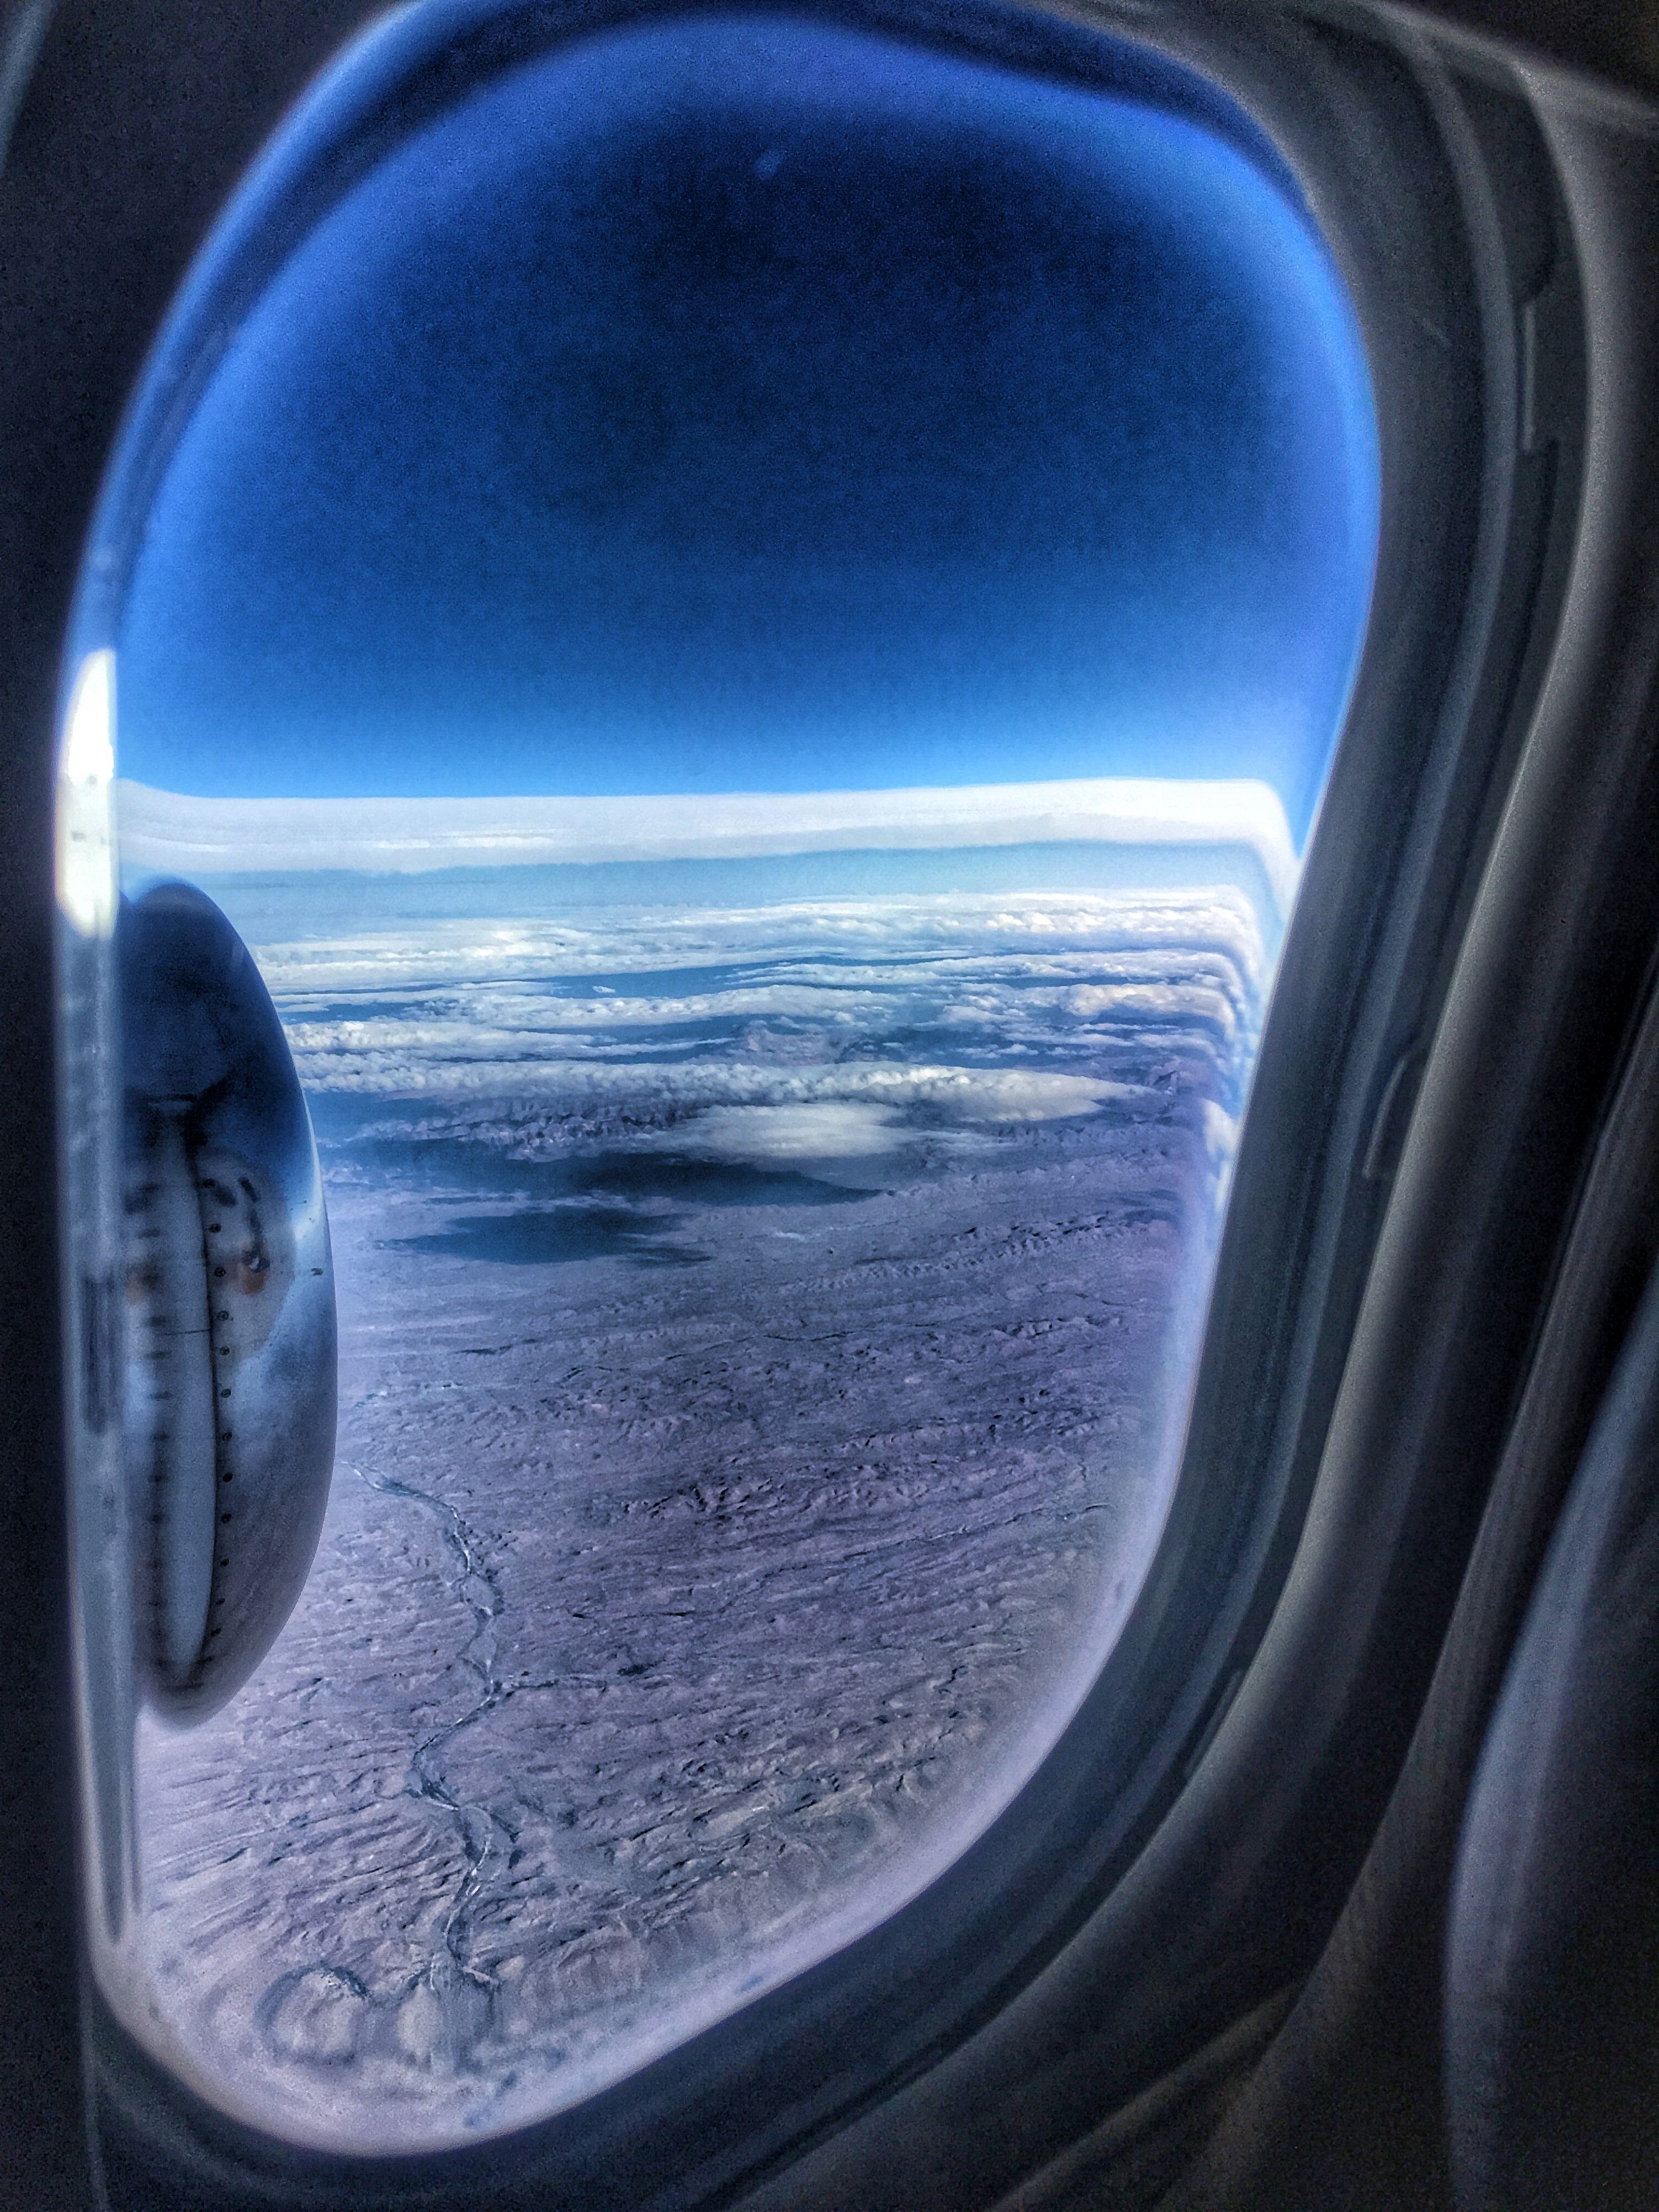 somewhere over the Karoo between Cape Town and Kruger National Park